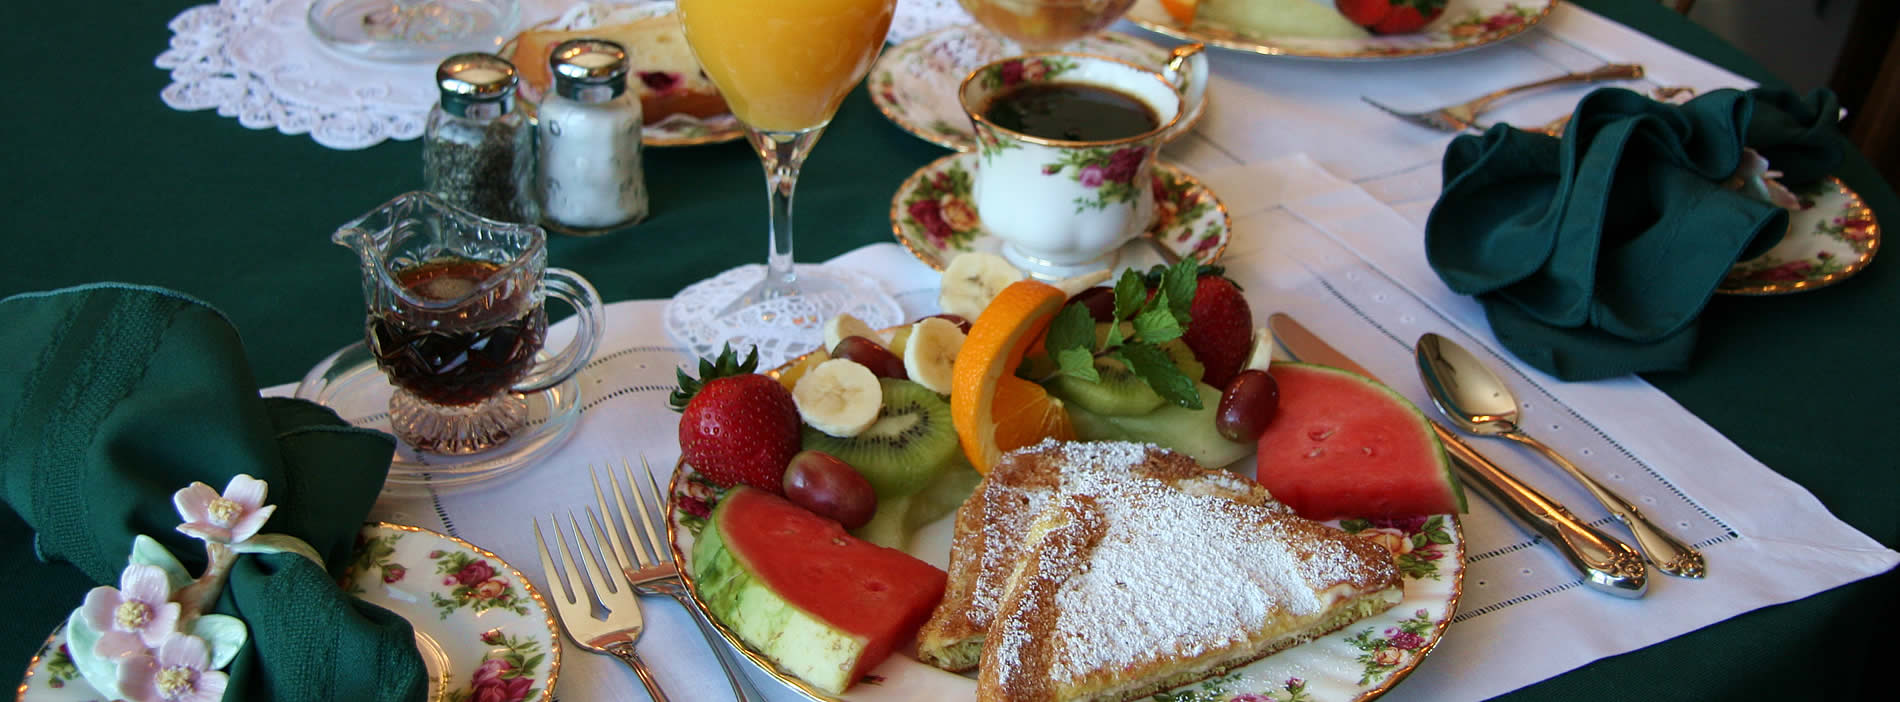 website design and marketing bed and breakfast inns